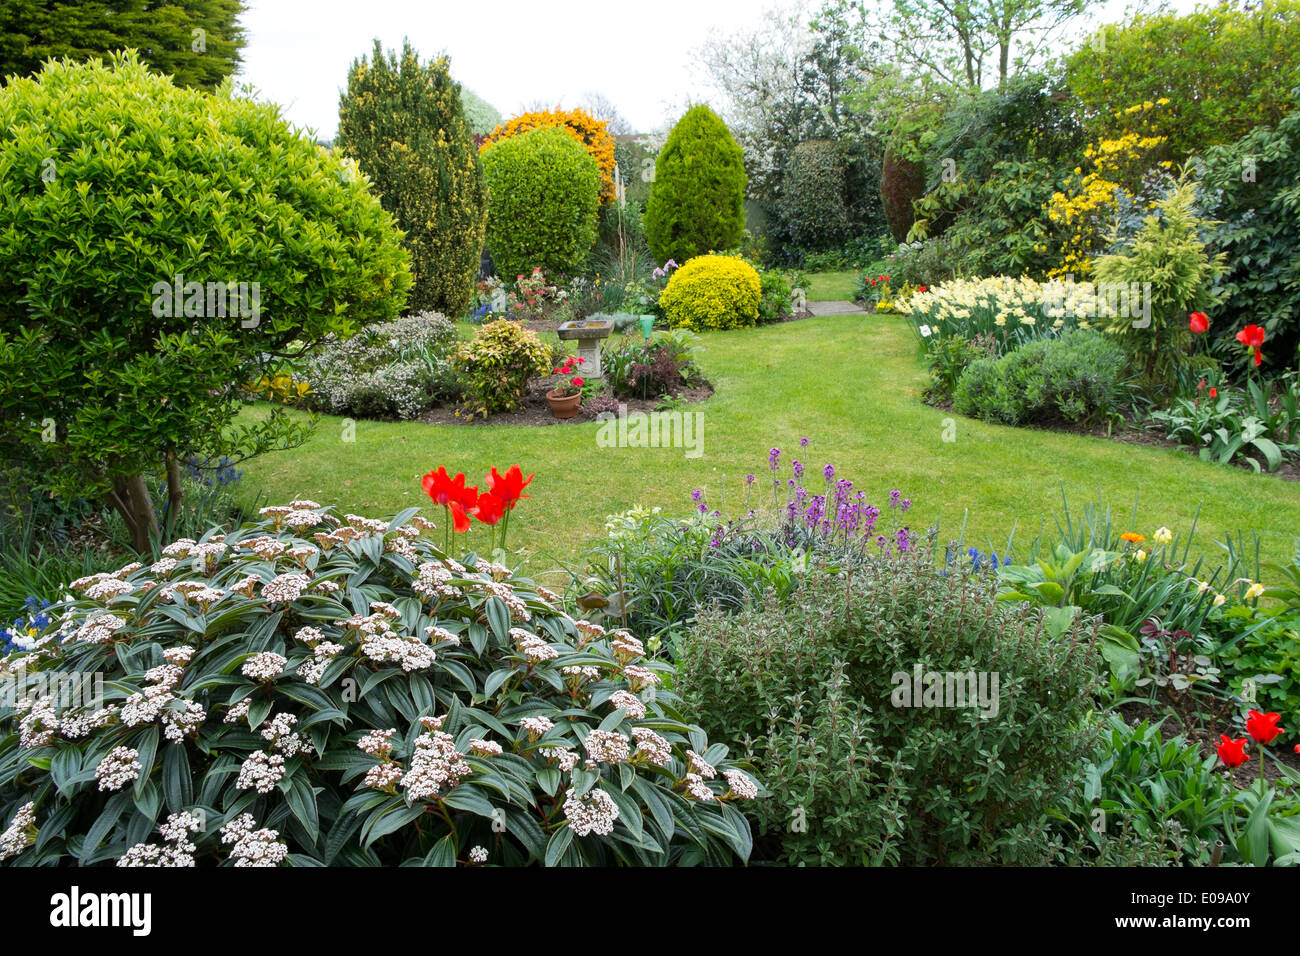 Surbuban garden in late spring with lawn and shrub borders - Stock Image